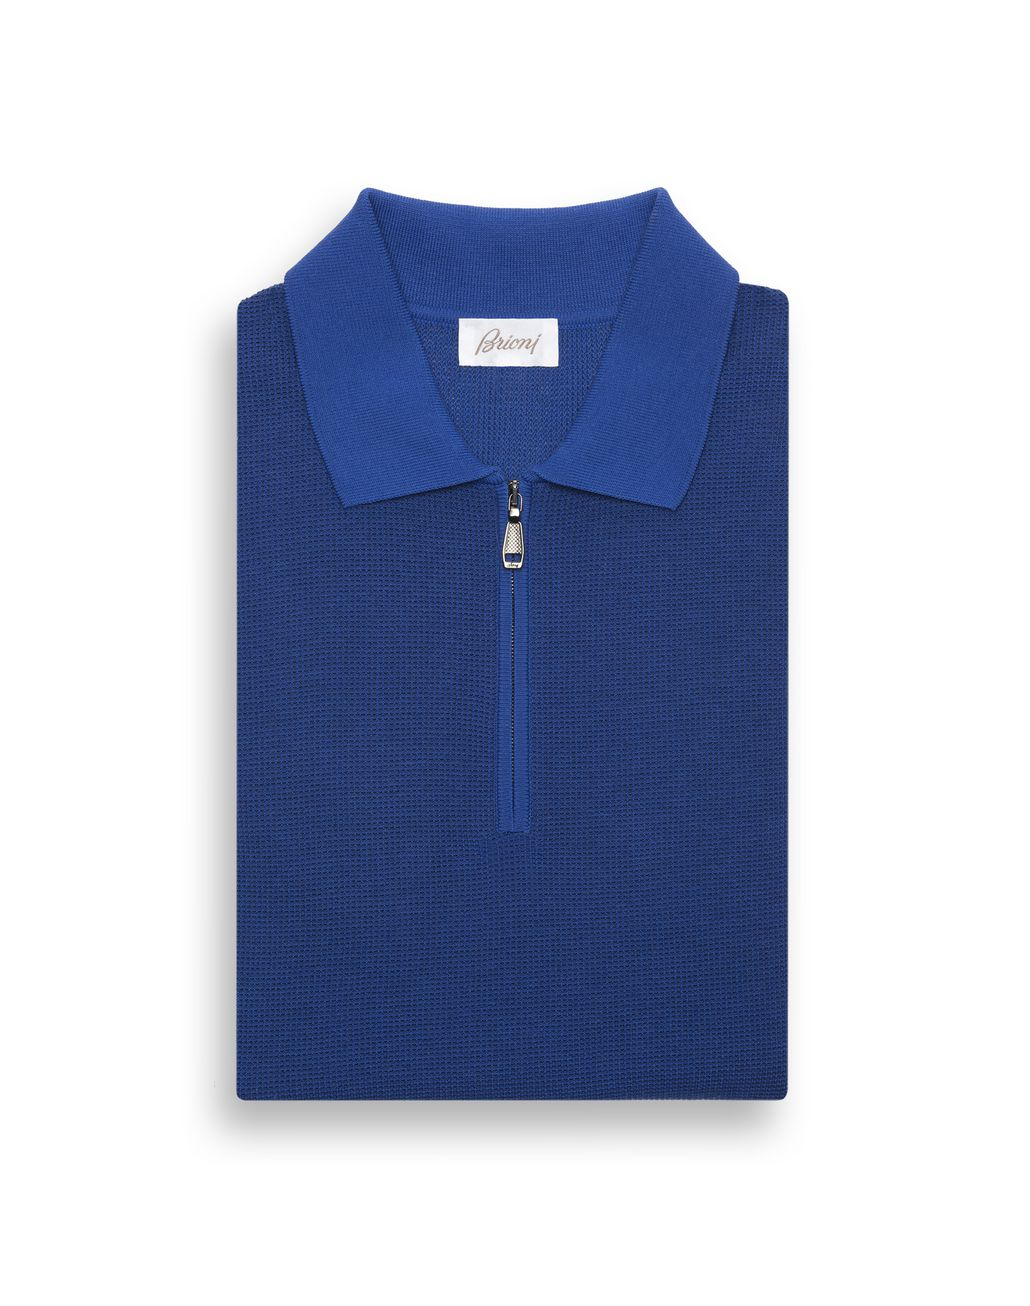 BRIONI Bluette Zipped Polo Shirt T-Shirts & Polos Man f